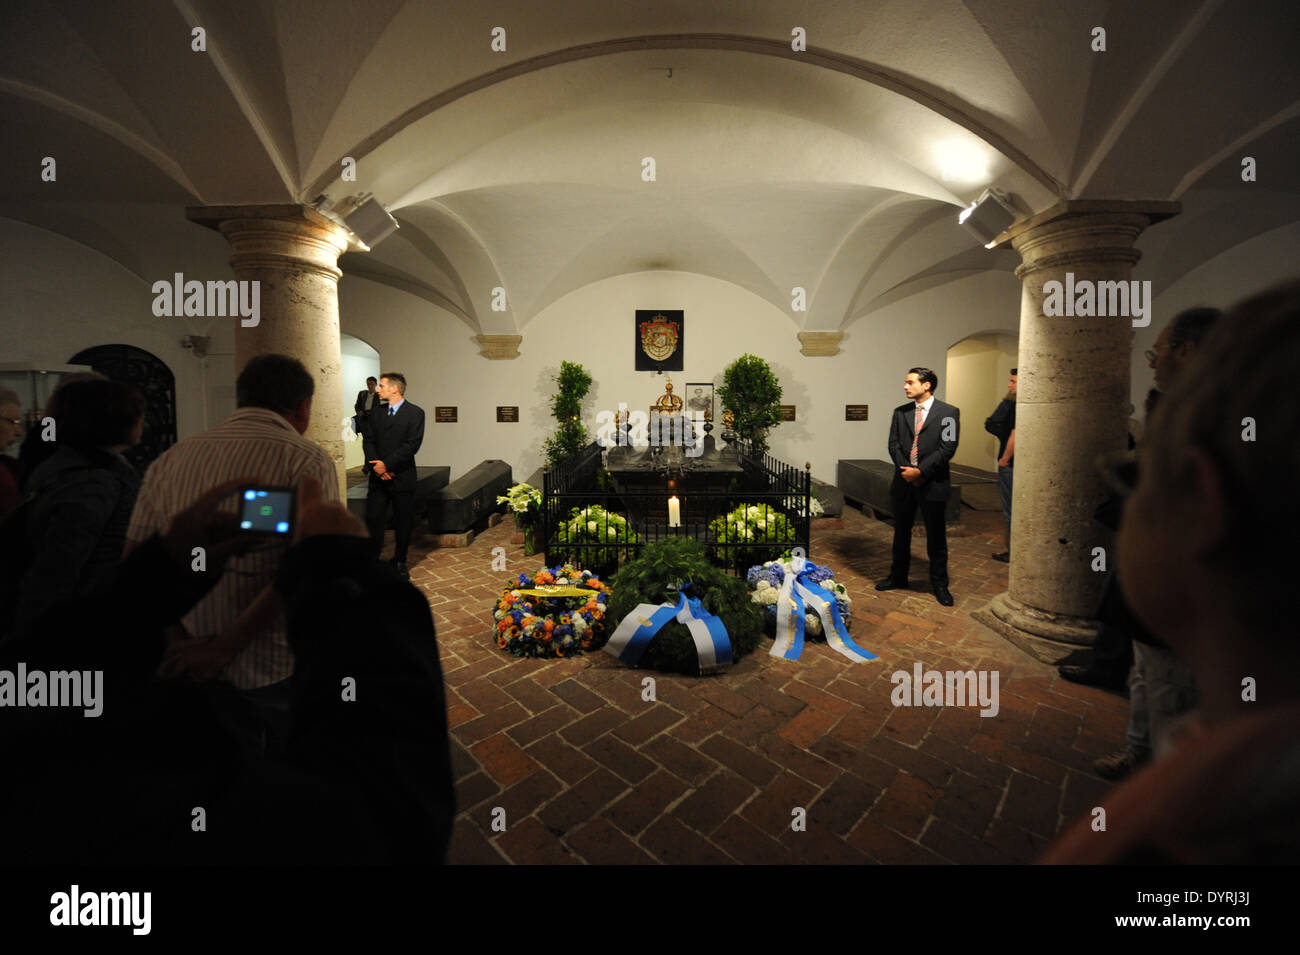 The 125th anniversary of the death of King Ludwig II of Bavaria, 2011 - Stock Image